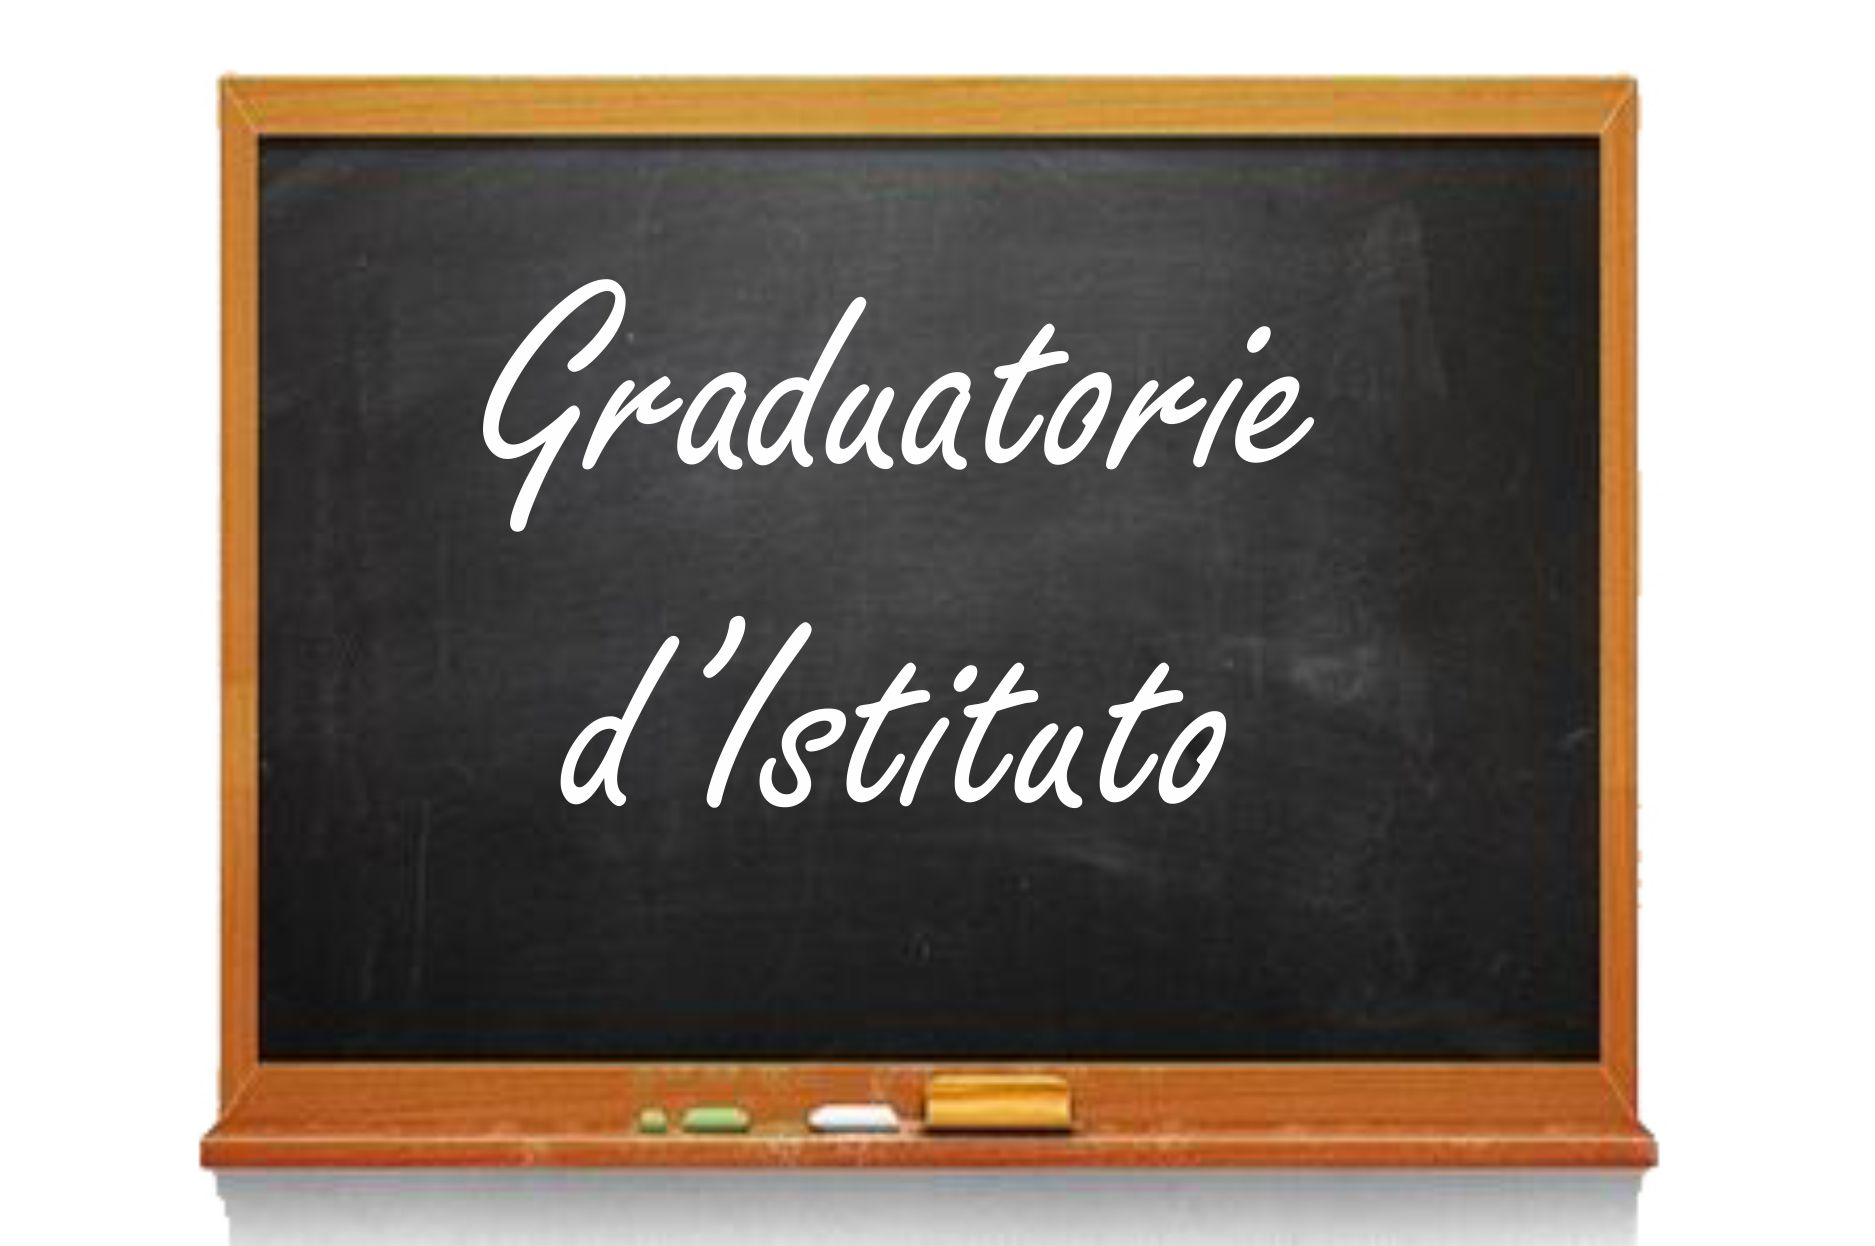 NotizieScuola.it - Graduatorie di Istituto